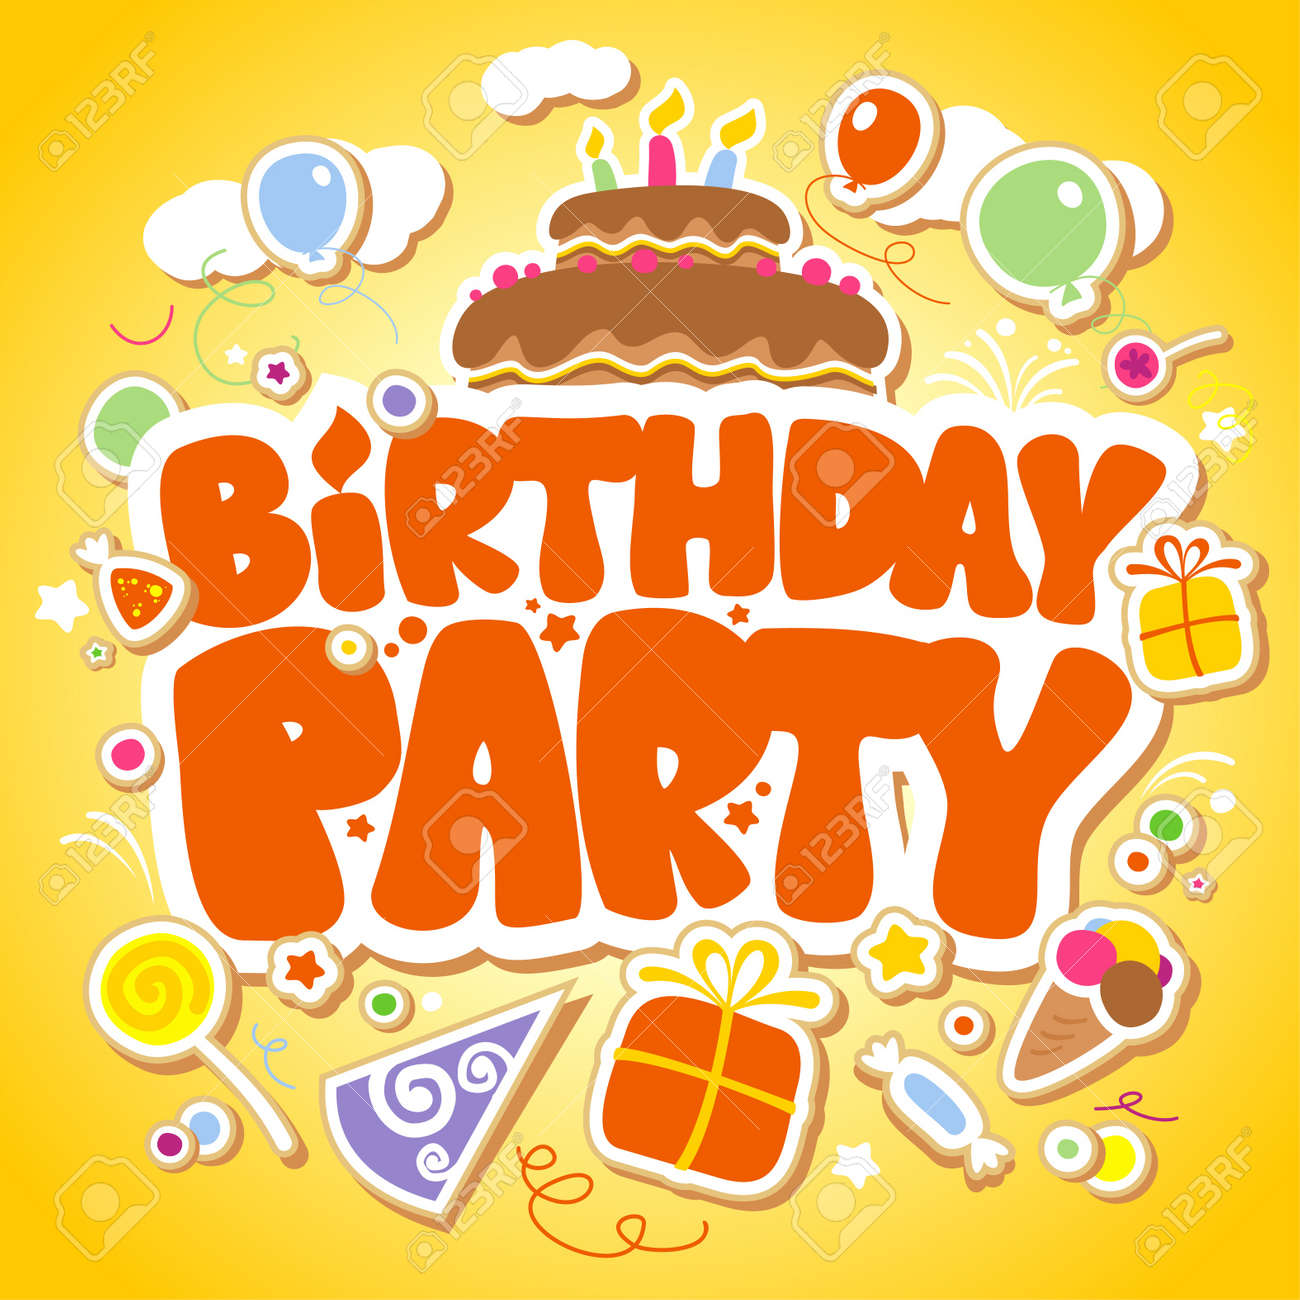 Birthday Party design template for children. Stock Vector - 12230704